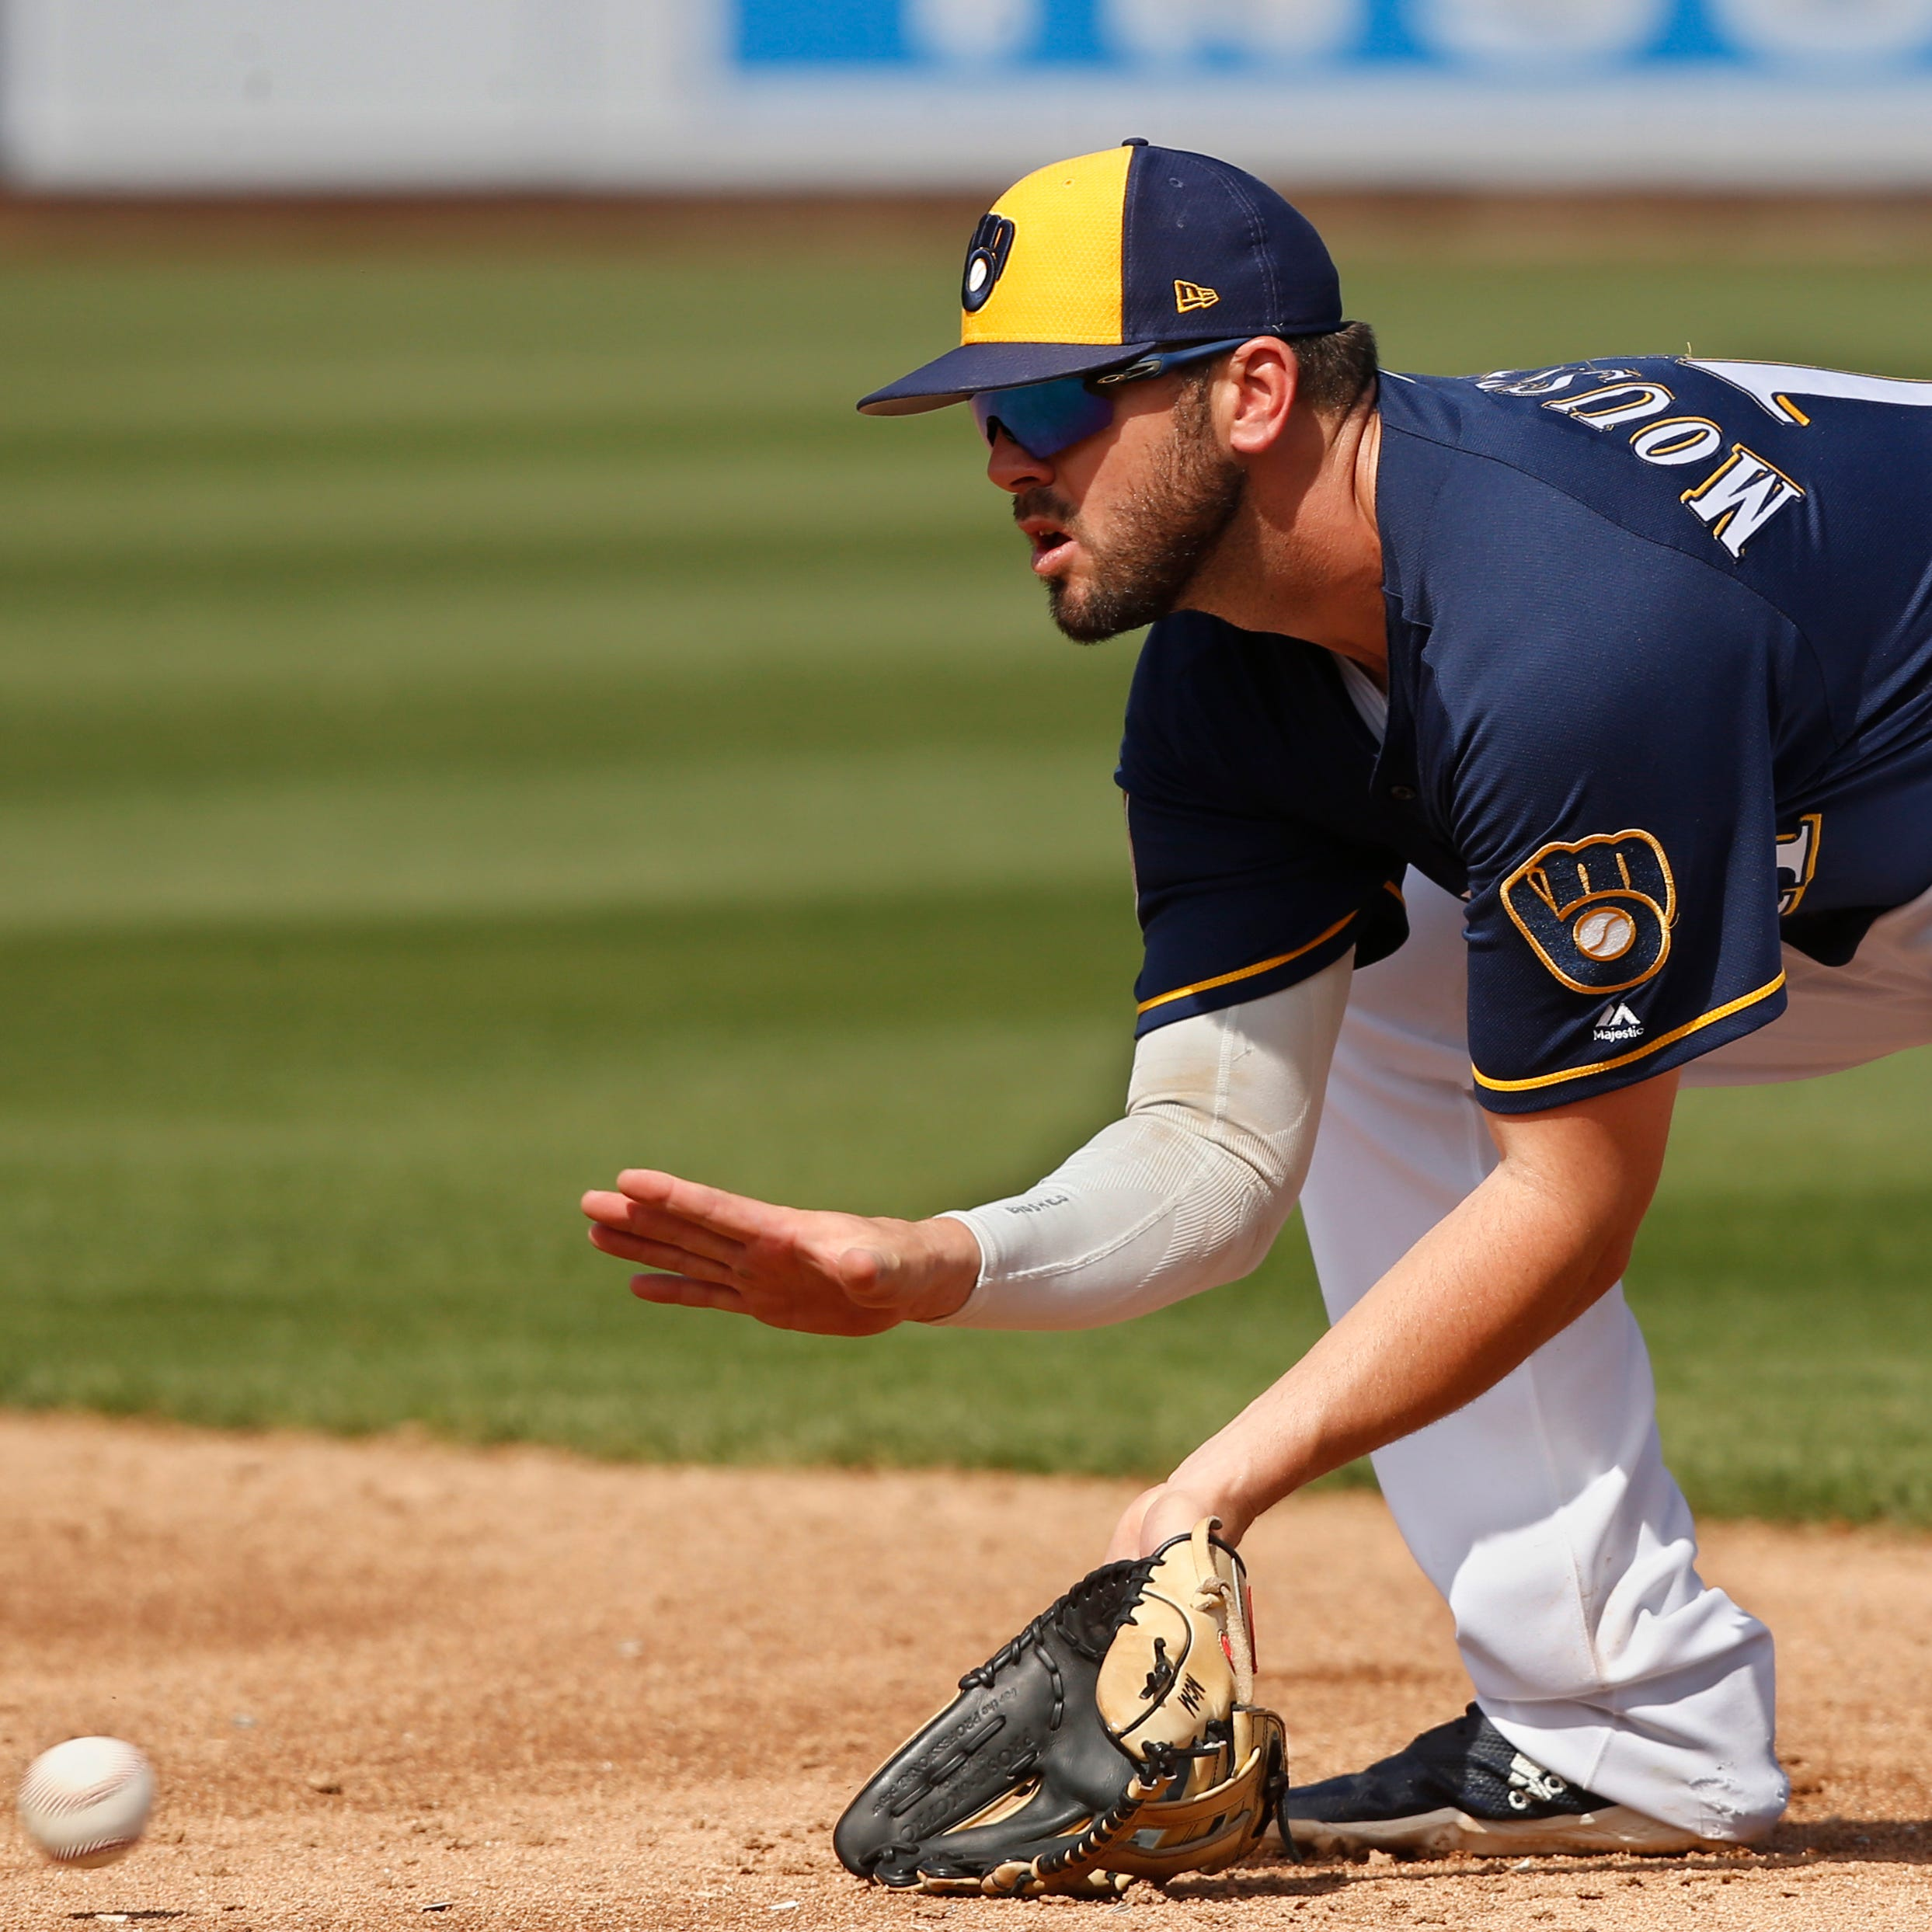 As camp comes to a close for Brewers, Mike Moustakas is feeling comfortable at second base